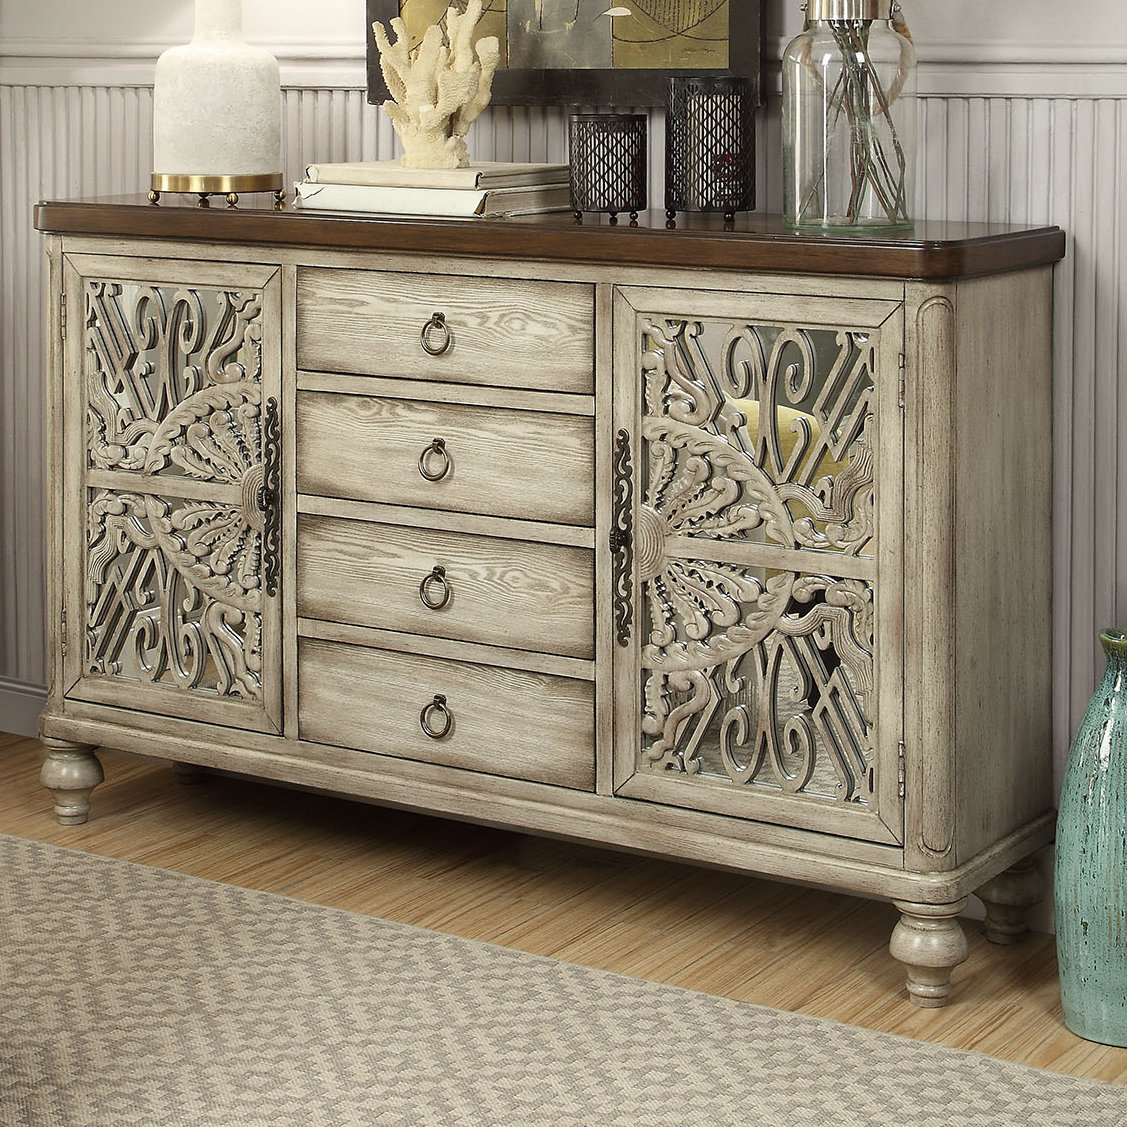 Dillen Sideboard & Reviews | Joss & Main pertaining to Mauzy Sideboards (Image 7 of 30)